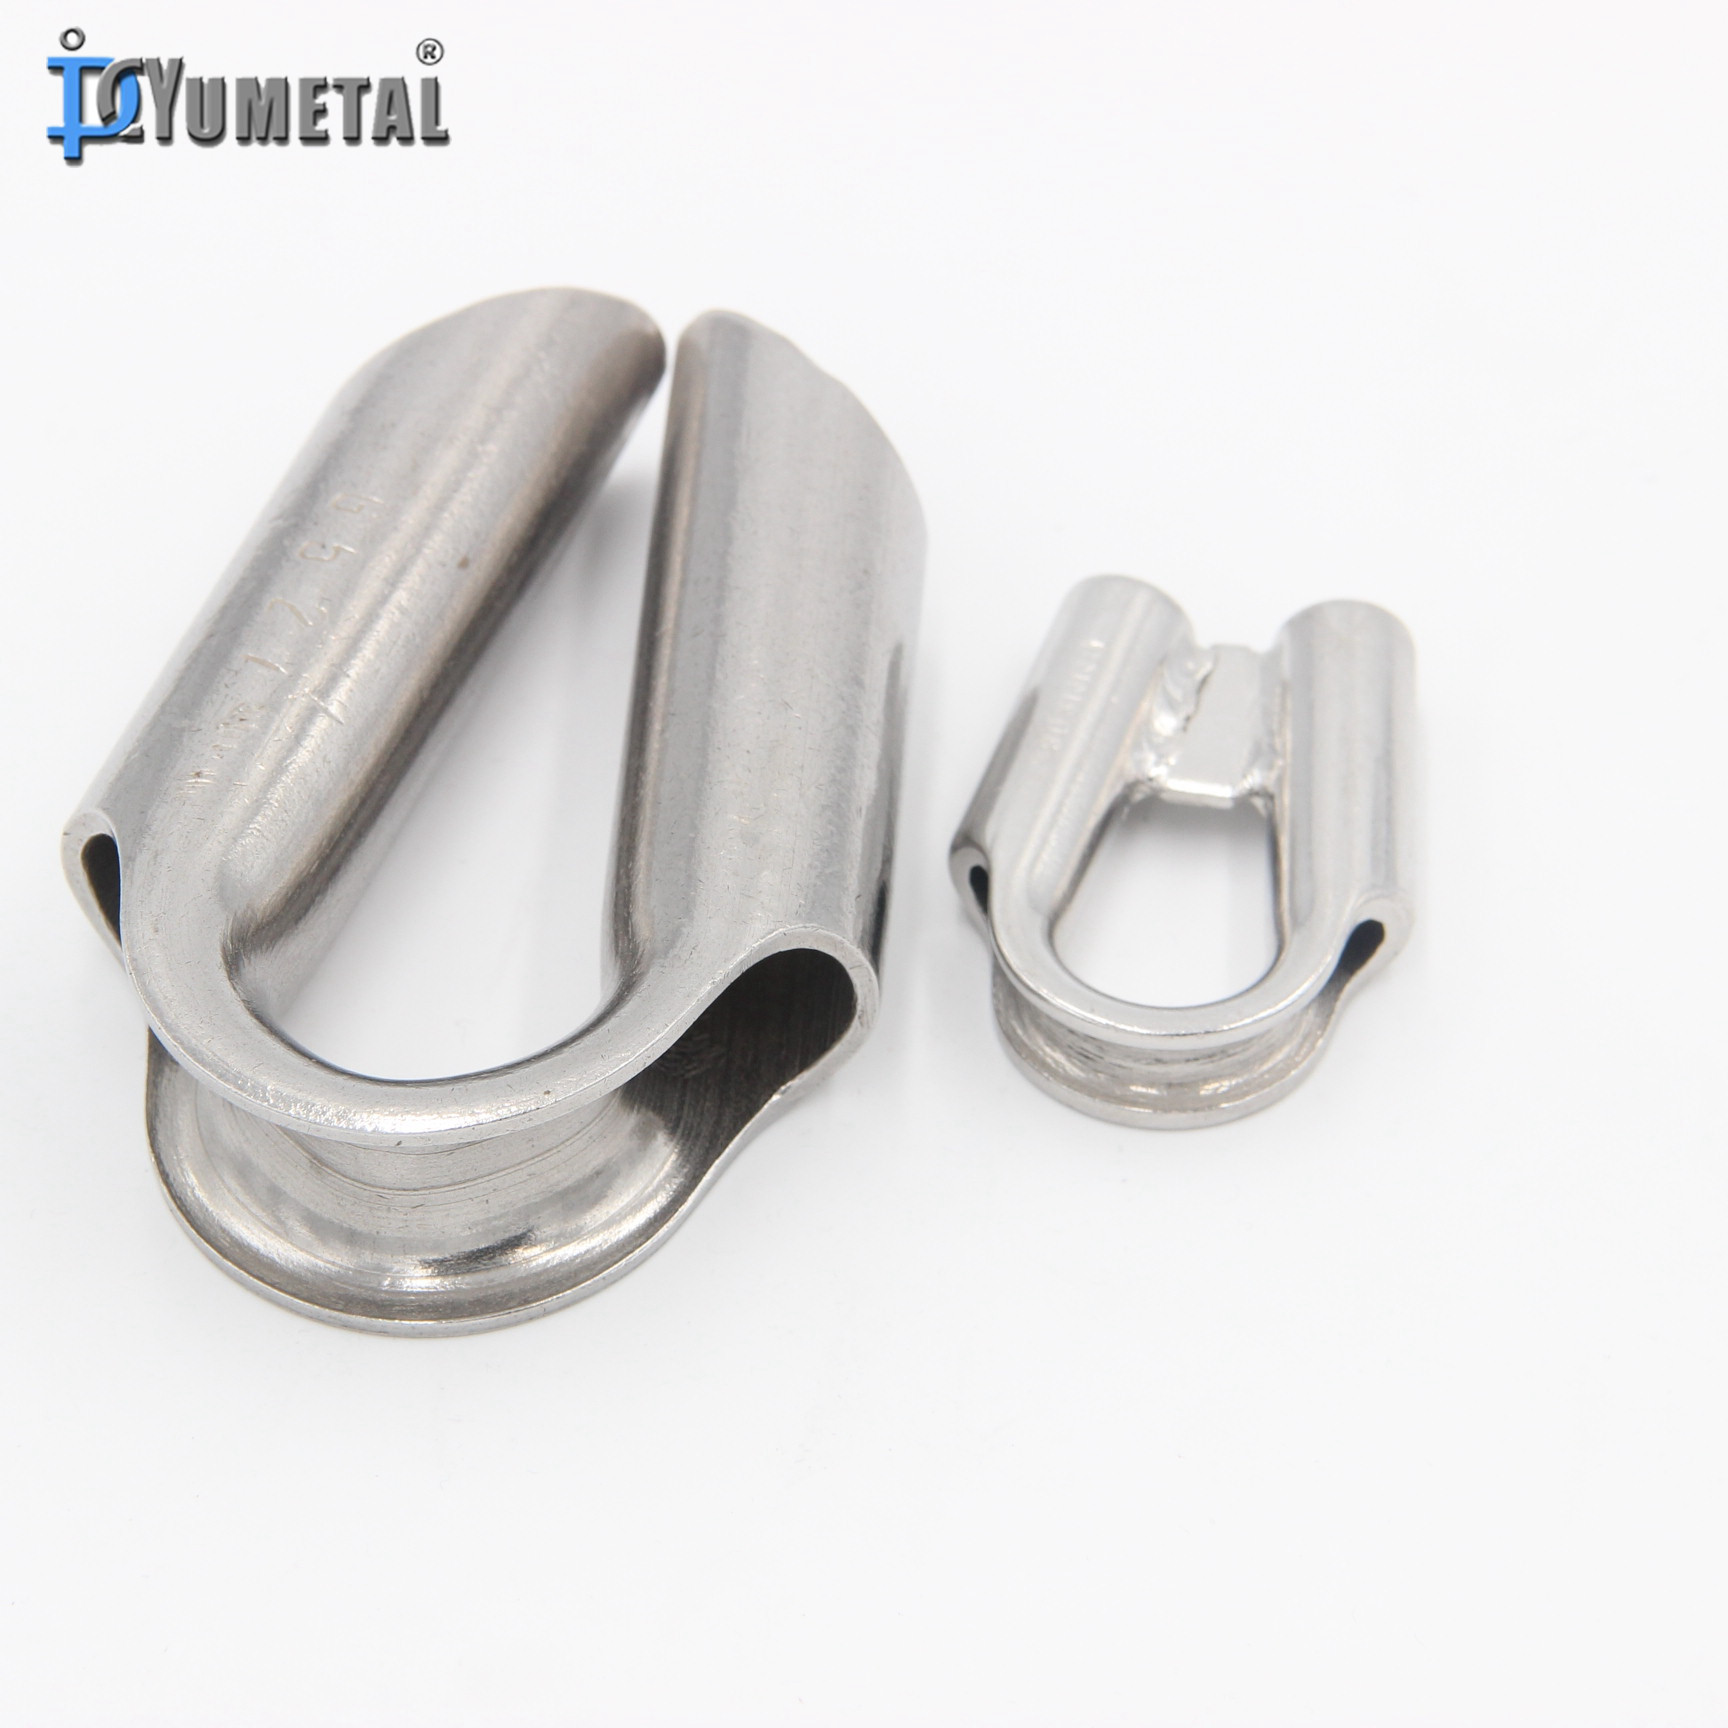 Stainless Steel Wire Rope Tube Thimble - Buy Tube Thimble,Wire Rope ...